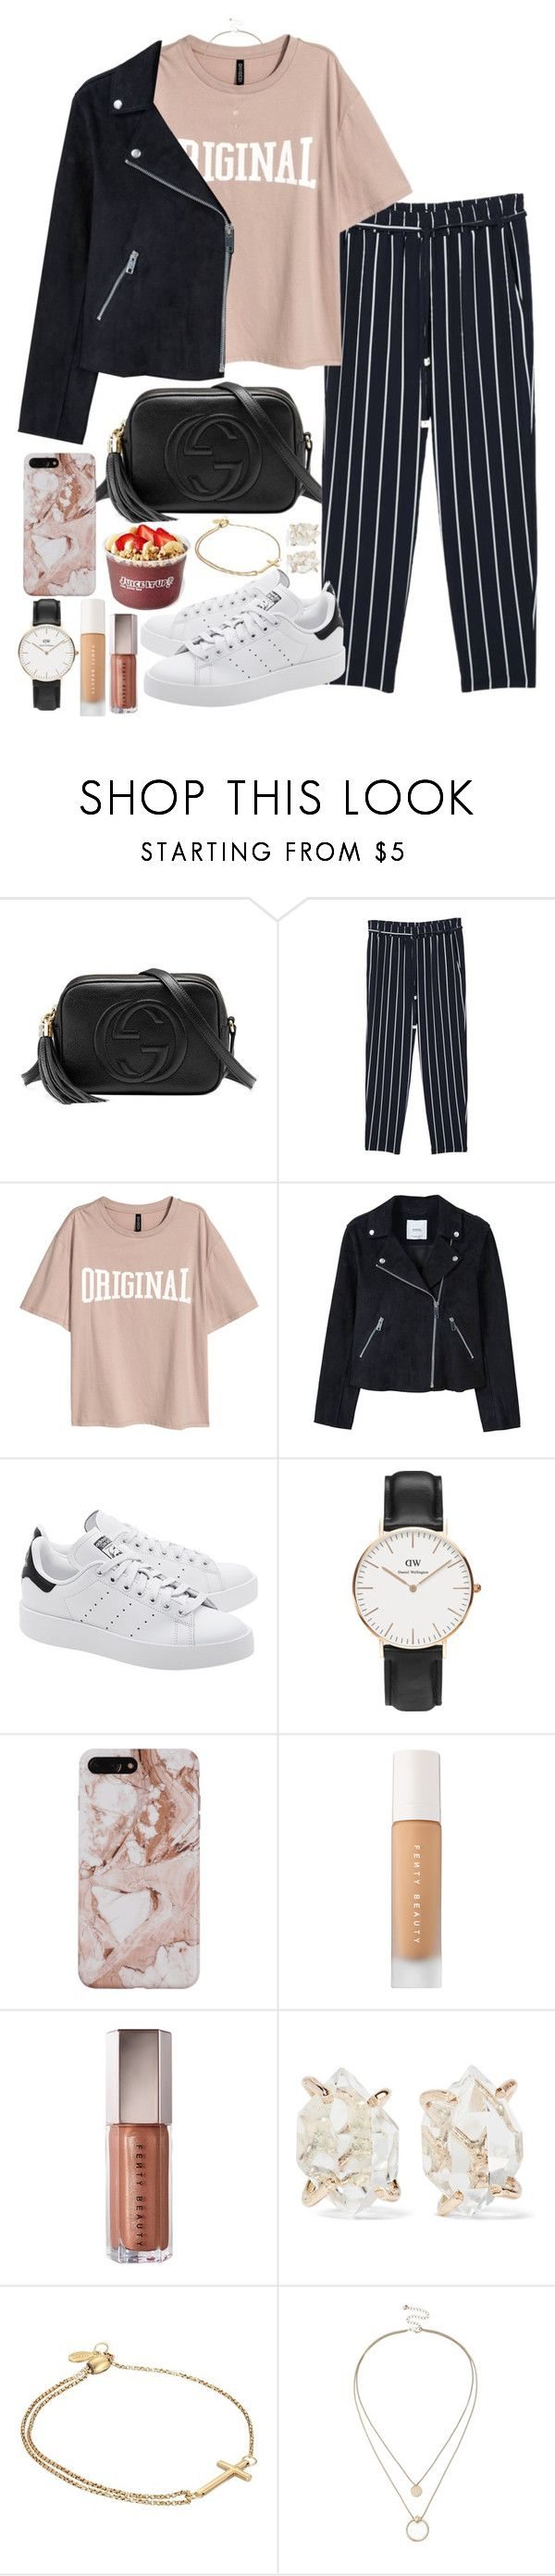 """original"" by valerienwashington ❤ liked on Polyvore featuring Gucci, MANGO, adidas Originals, Daniel Wellington, Puma, Melissa Joy Manning, Alex and Ani, Sole Society and MyFaveTshirt"